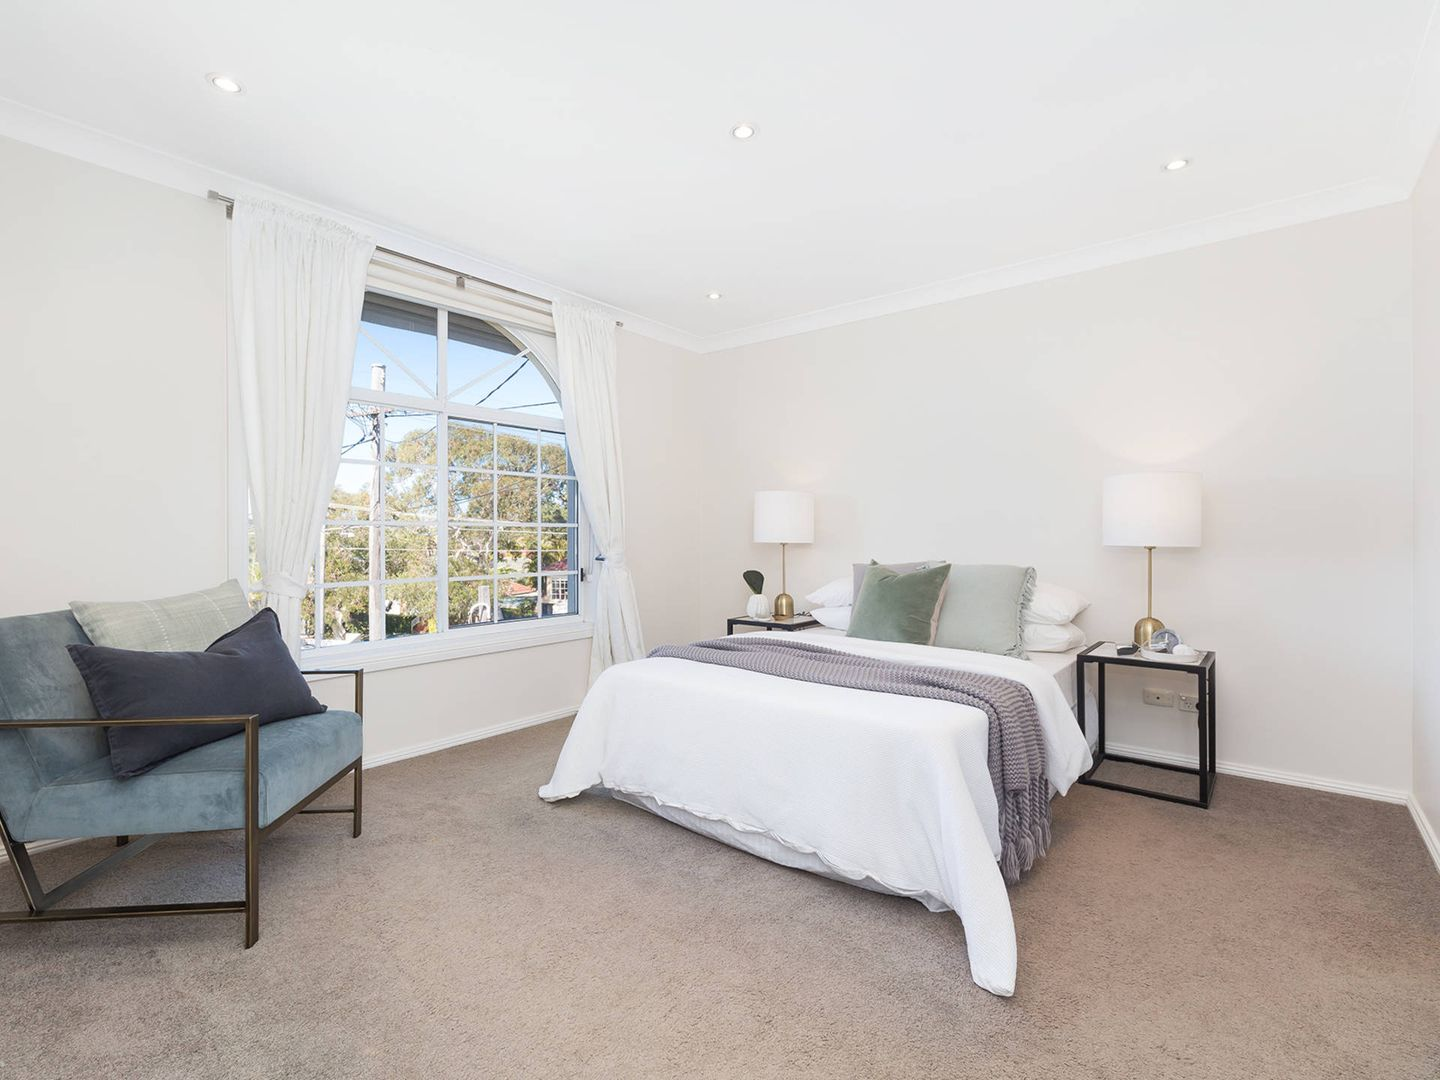 43A Langer Avenue, Caringbah South NSW 2229, Image 2